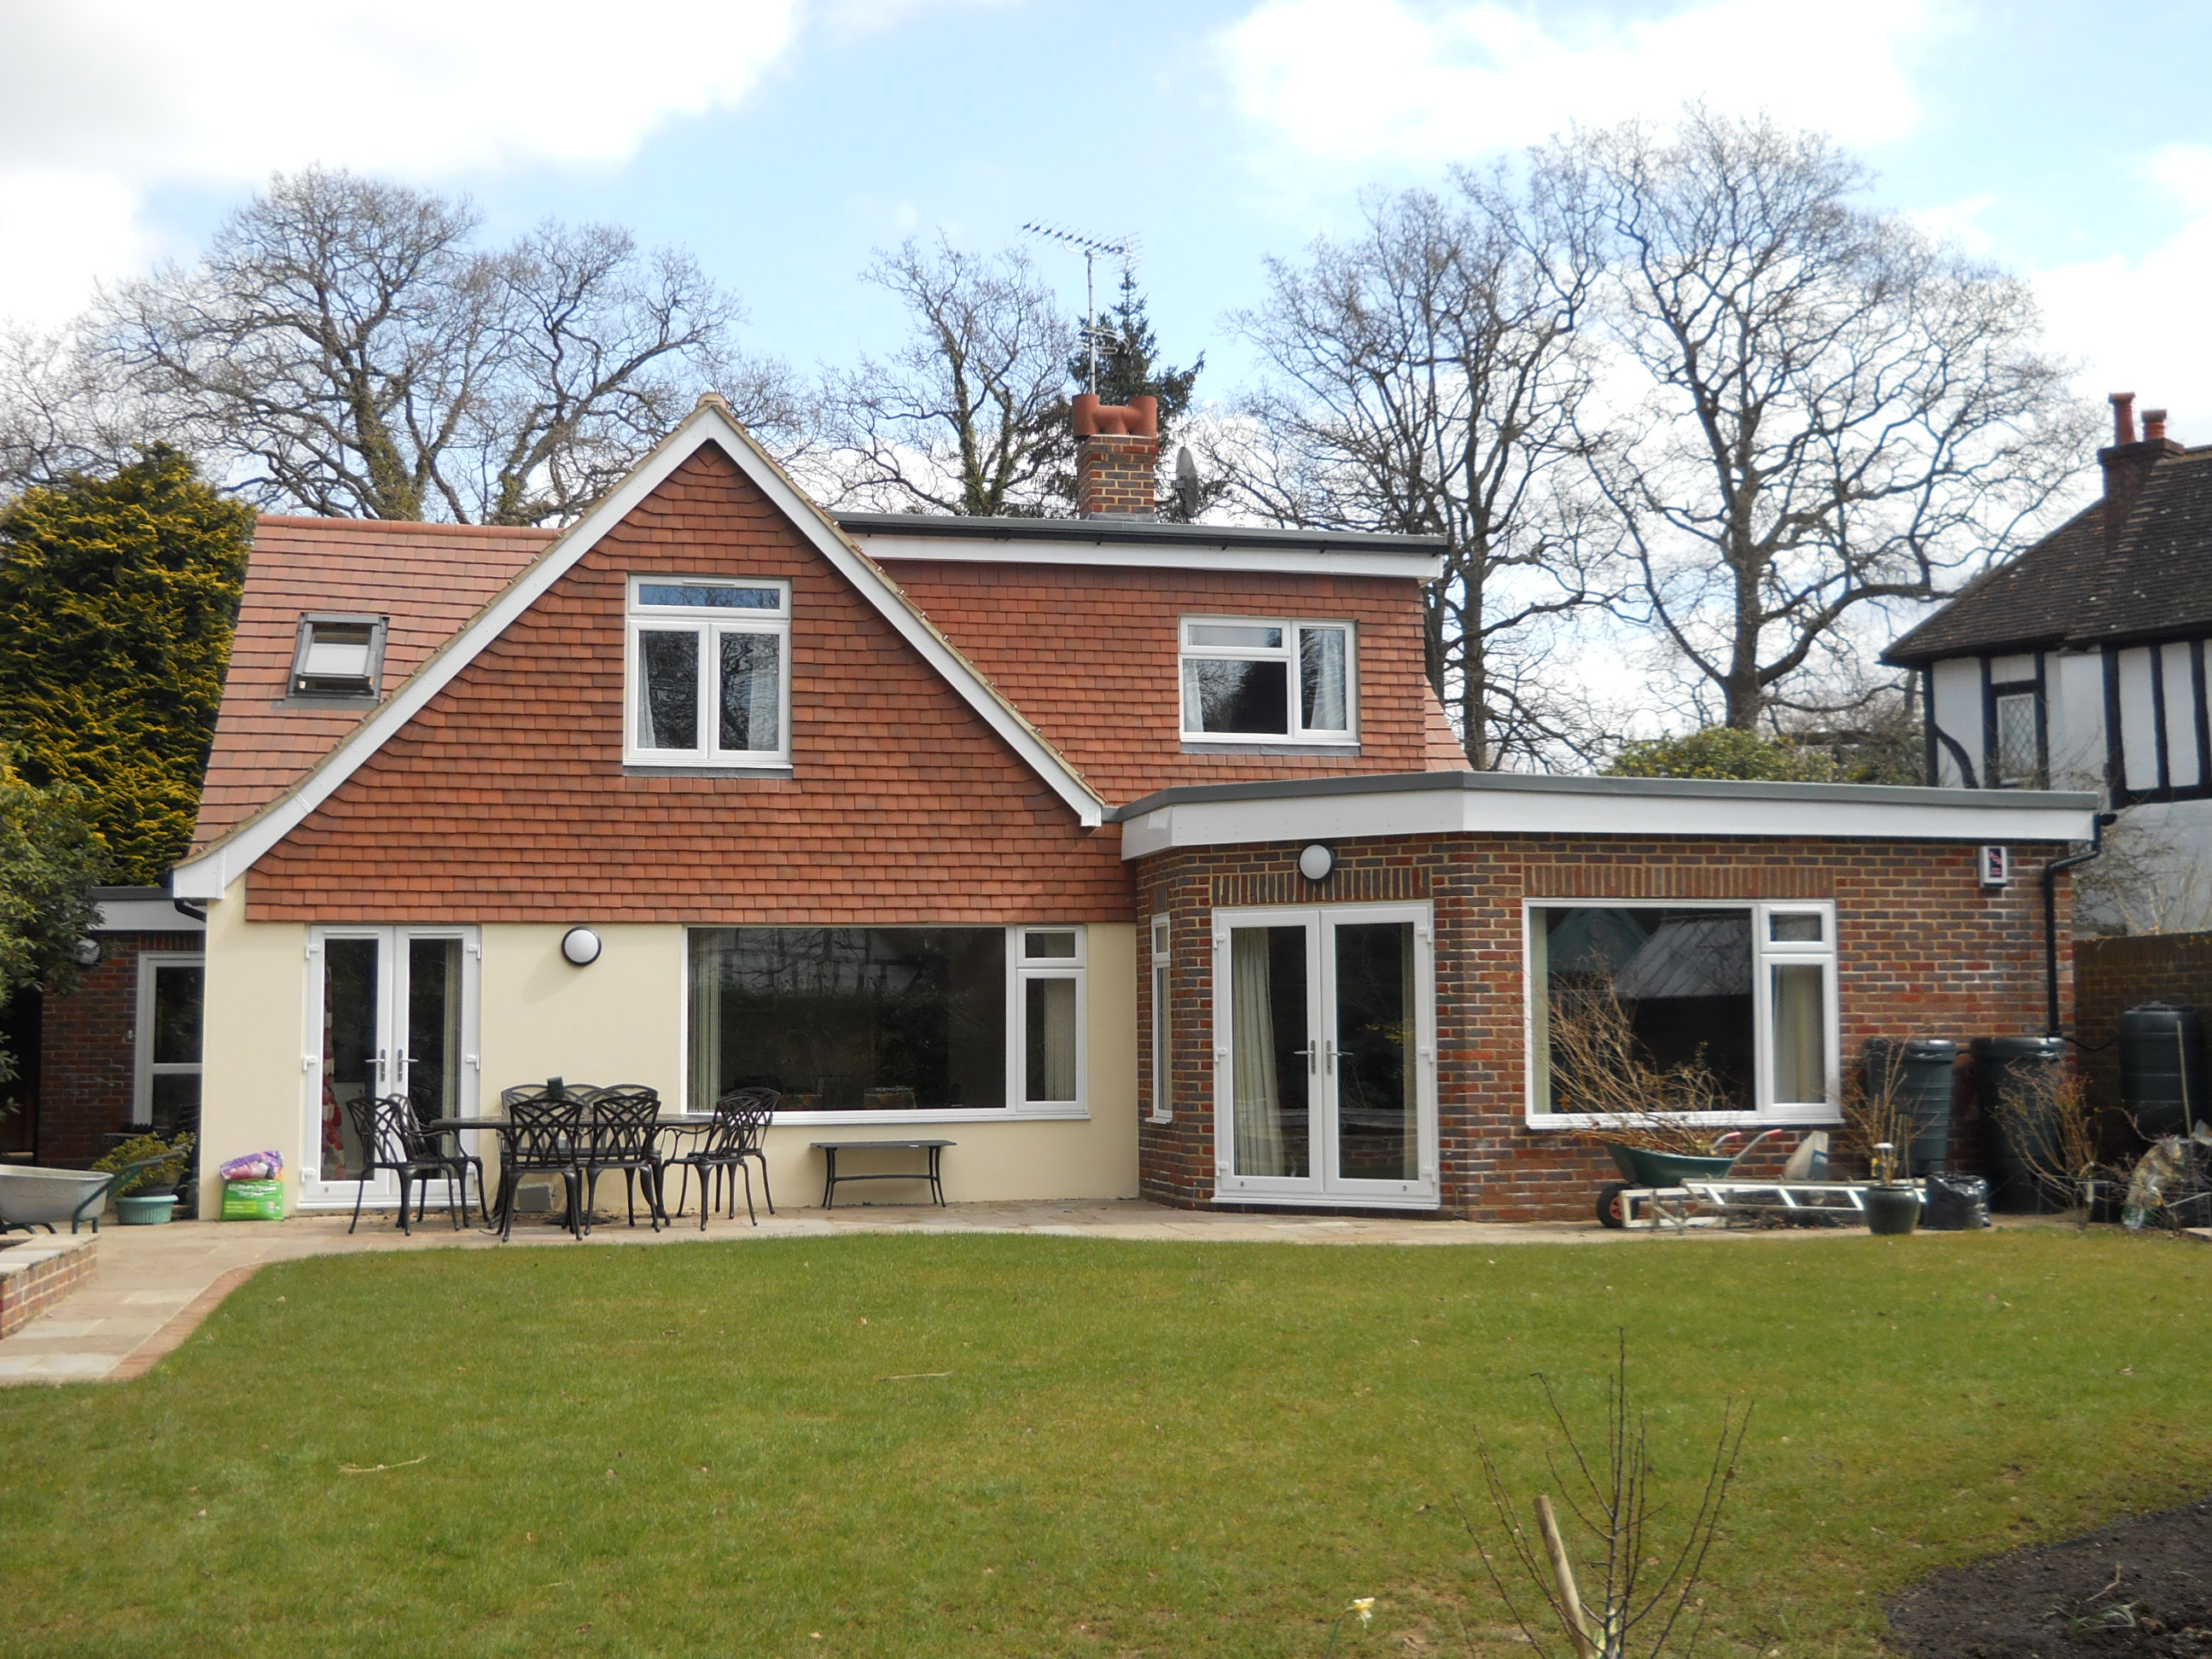 Extensions And Renovation In Storrington Horizon Design